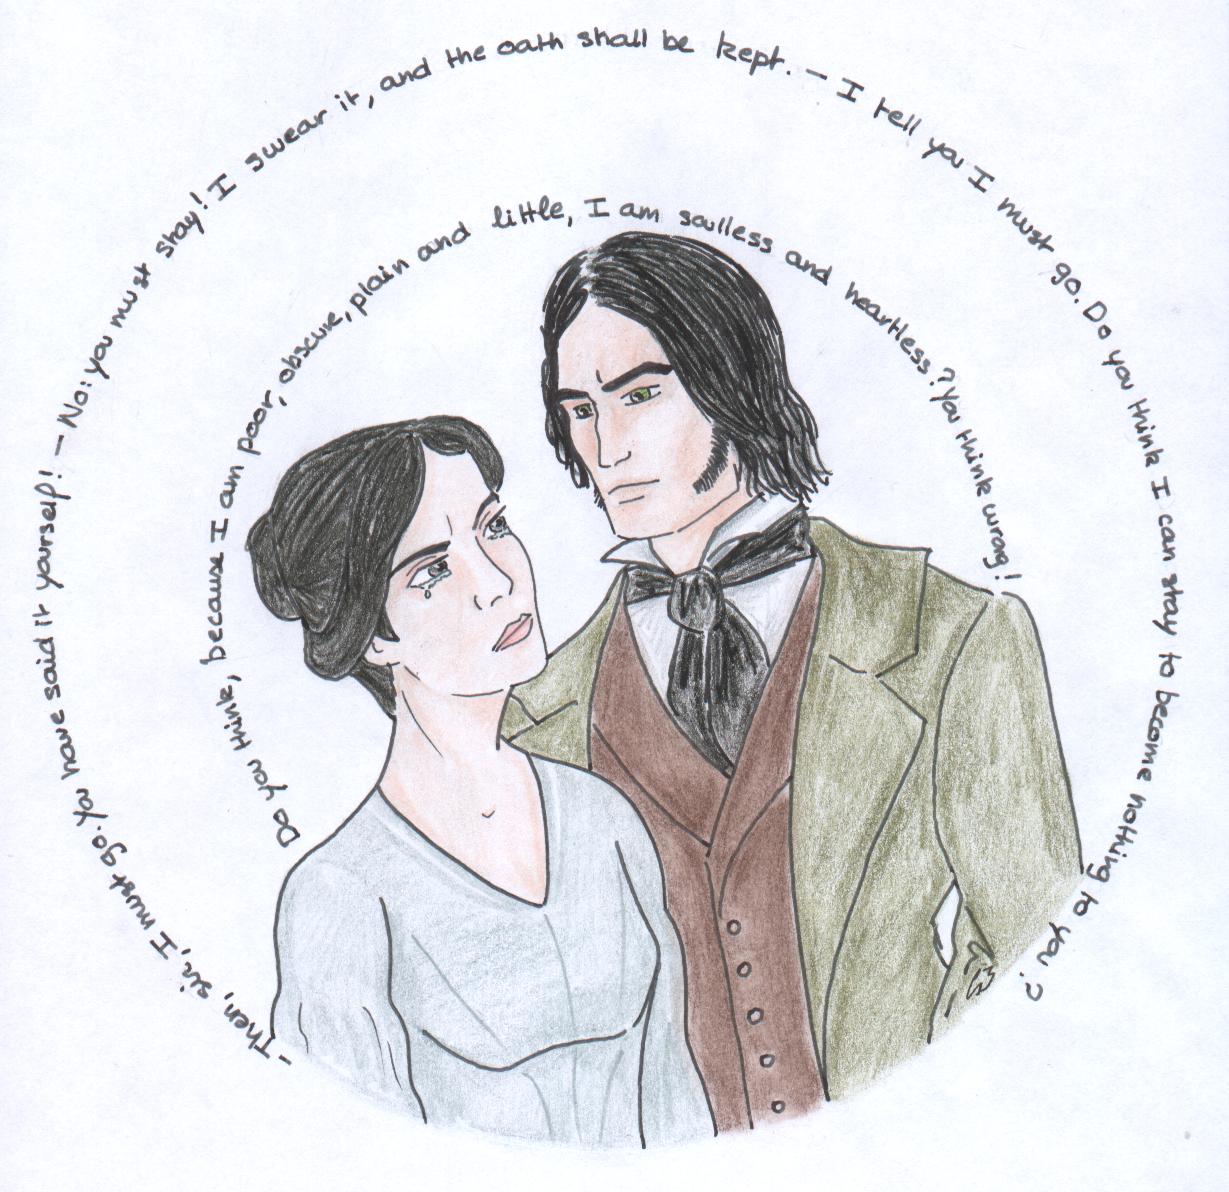 an analysis of the obstacle jane eyre and mr rochester must overcome An analysis of the beauty in jane eyre english literature essay the thesis focuses on the analysis of jane eyre's after jane accepted mr rochester.